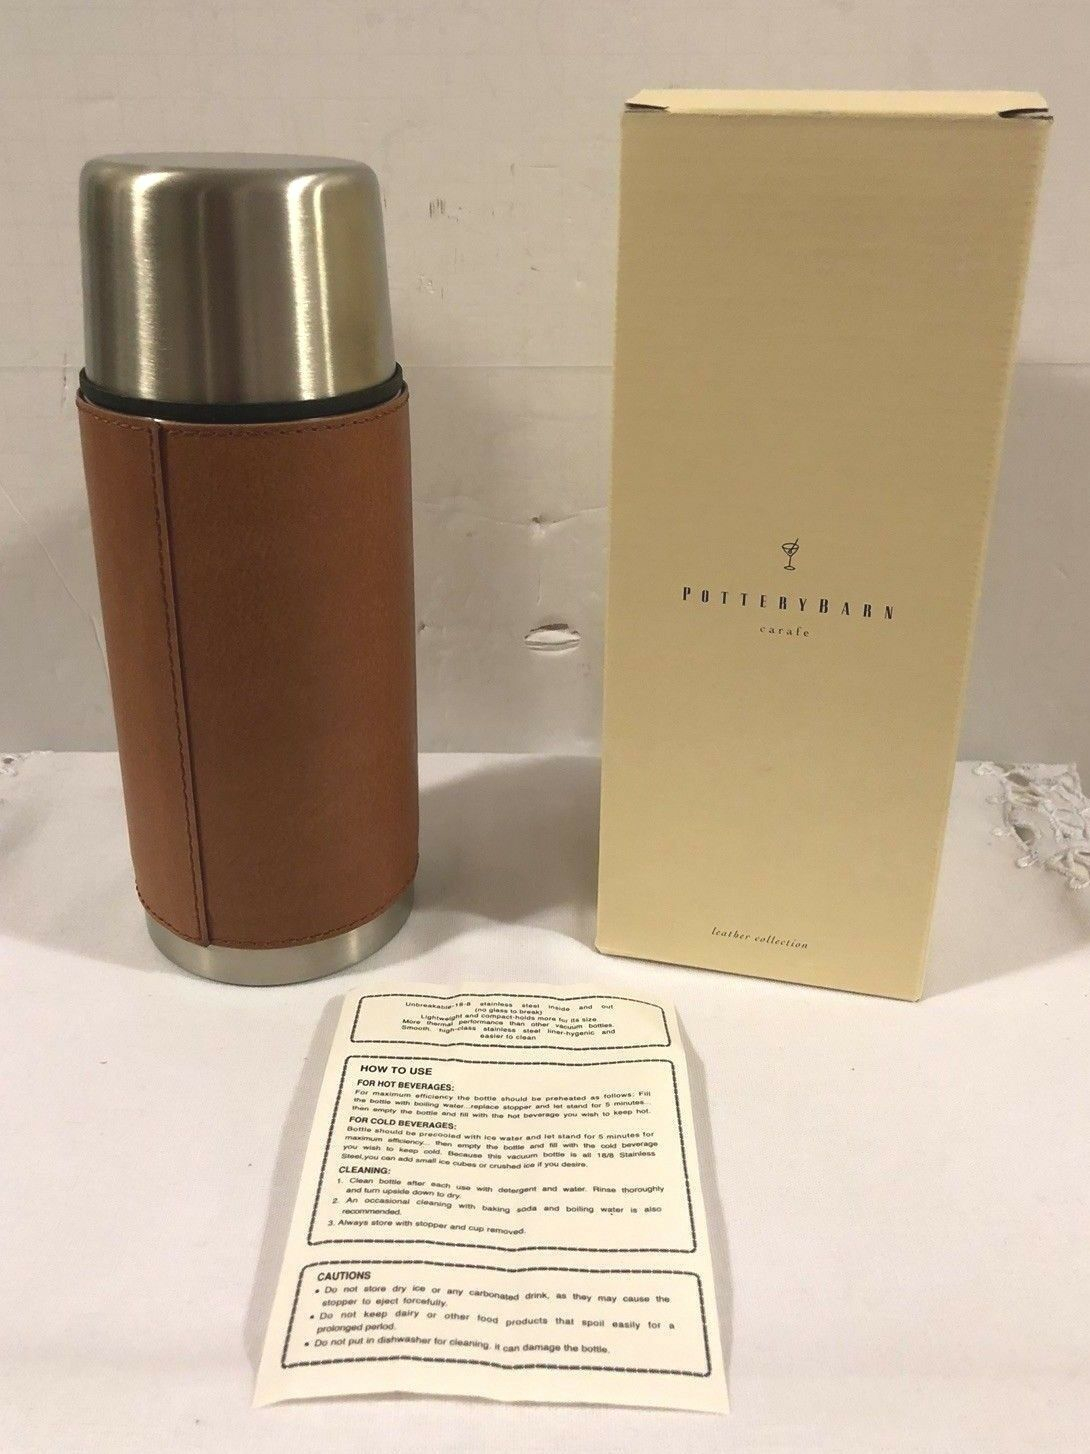 Rare Pottery Barn Leather Collection Stainless  steel Carafe Thermos new in box  free shipping